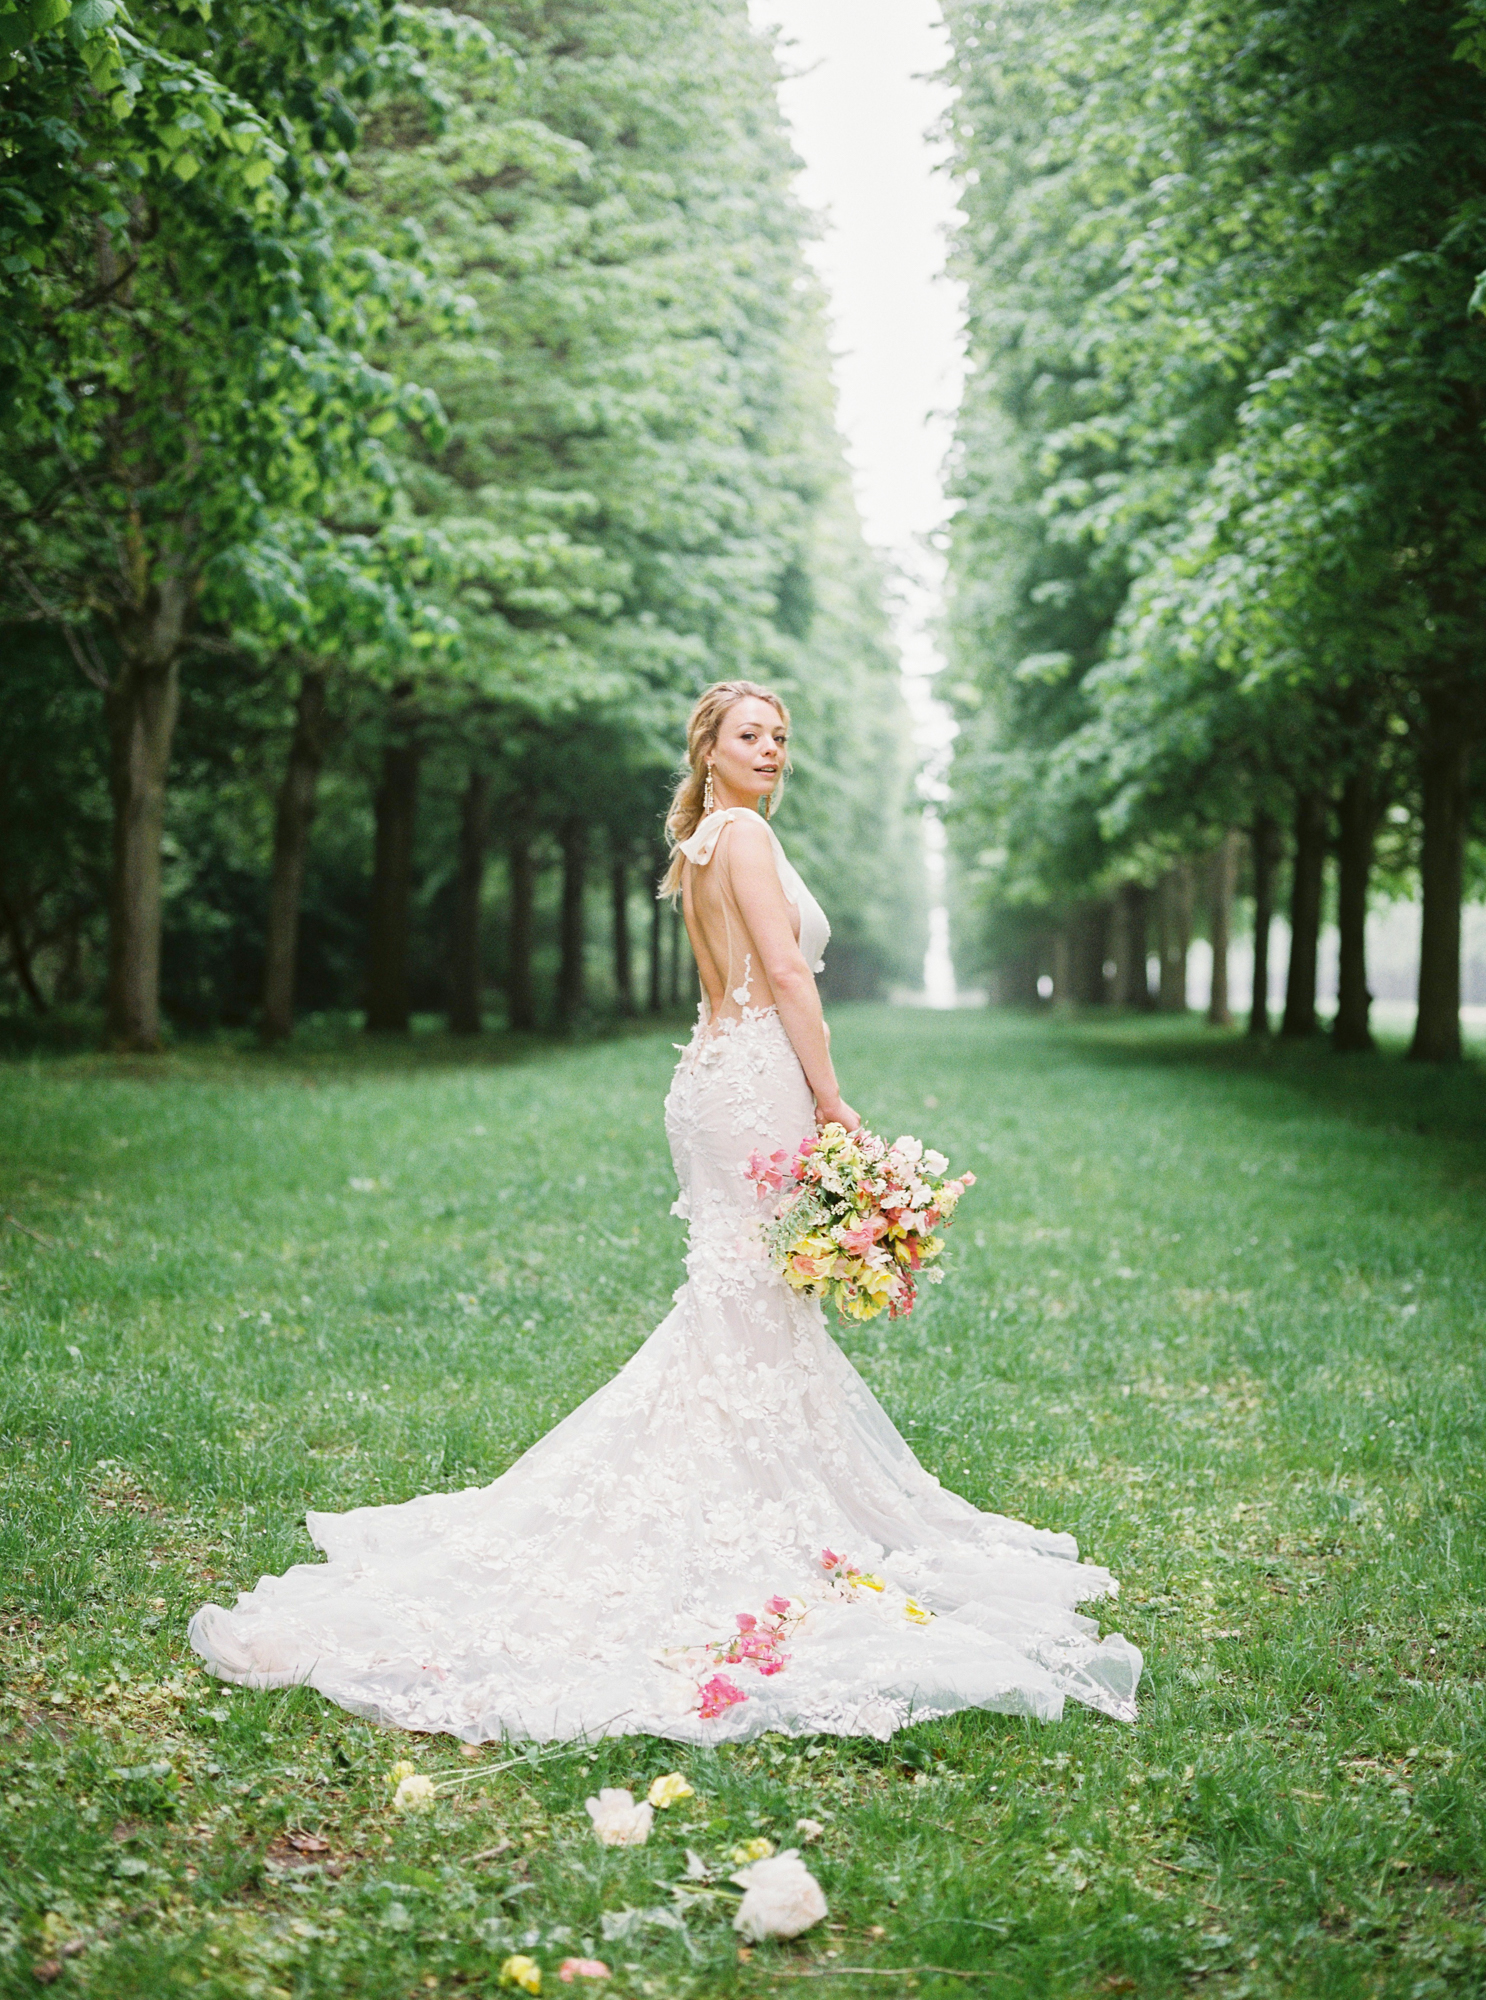 travellur_photoshoot__summer_in_versailles_wedding_flowers_bridal_luxe_shoot_floral_france_gardens.jpg